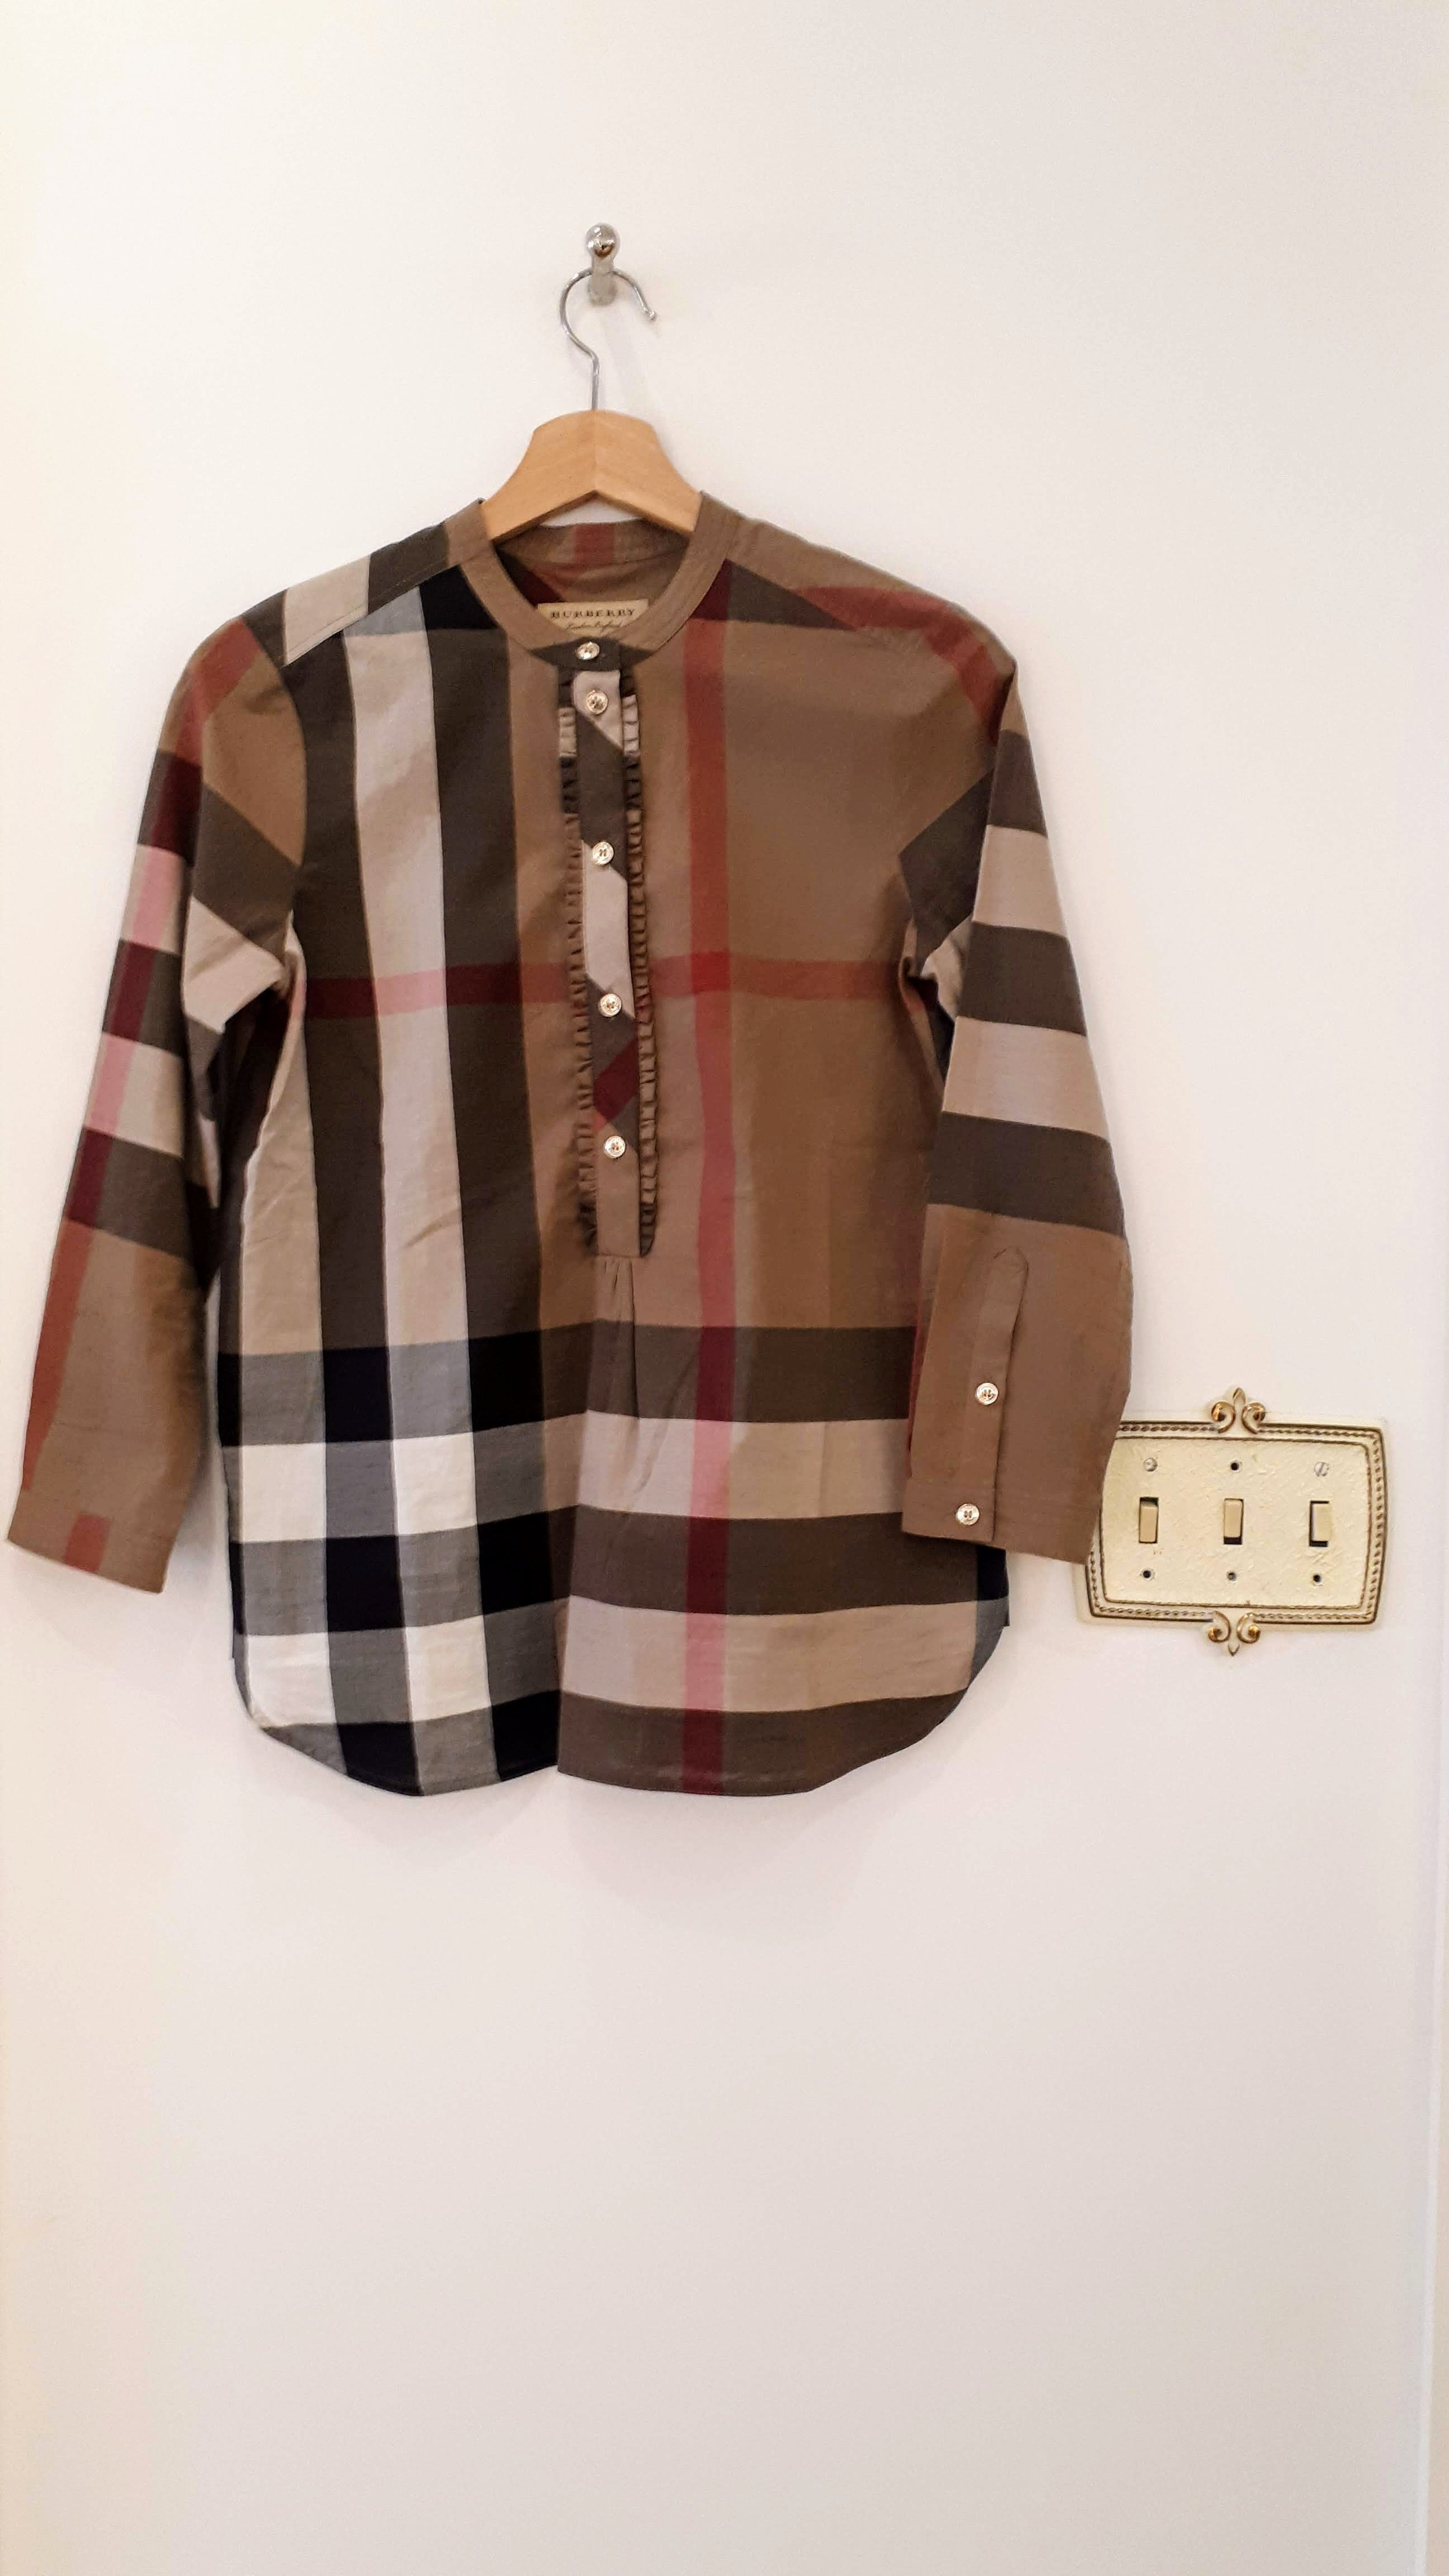 Burberry top; Size S, $42